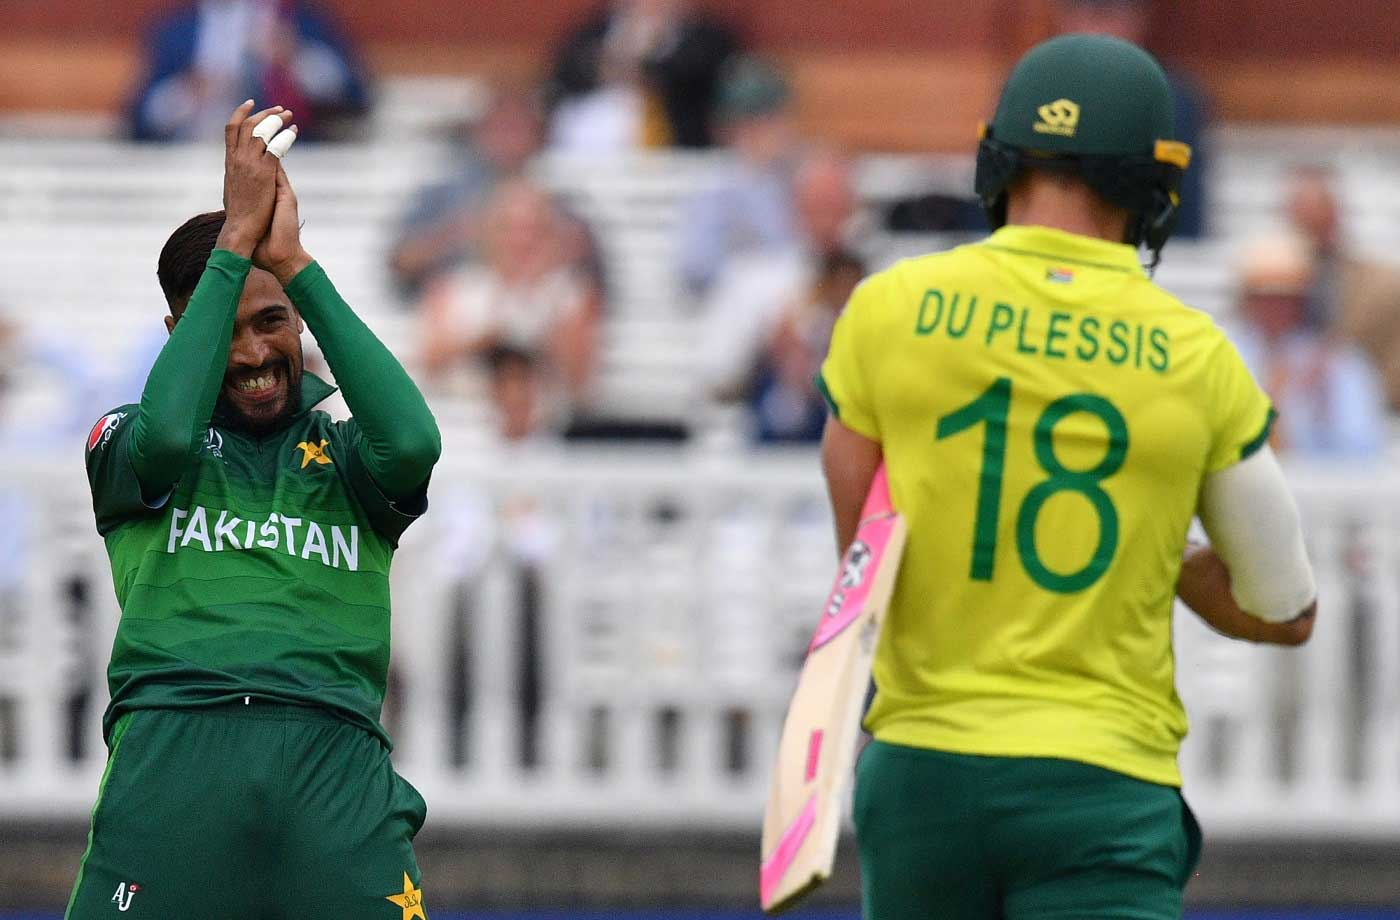 Pakistan knock Proteas out of World Cup 2019 - Cricket